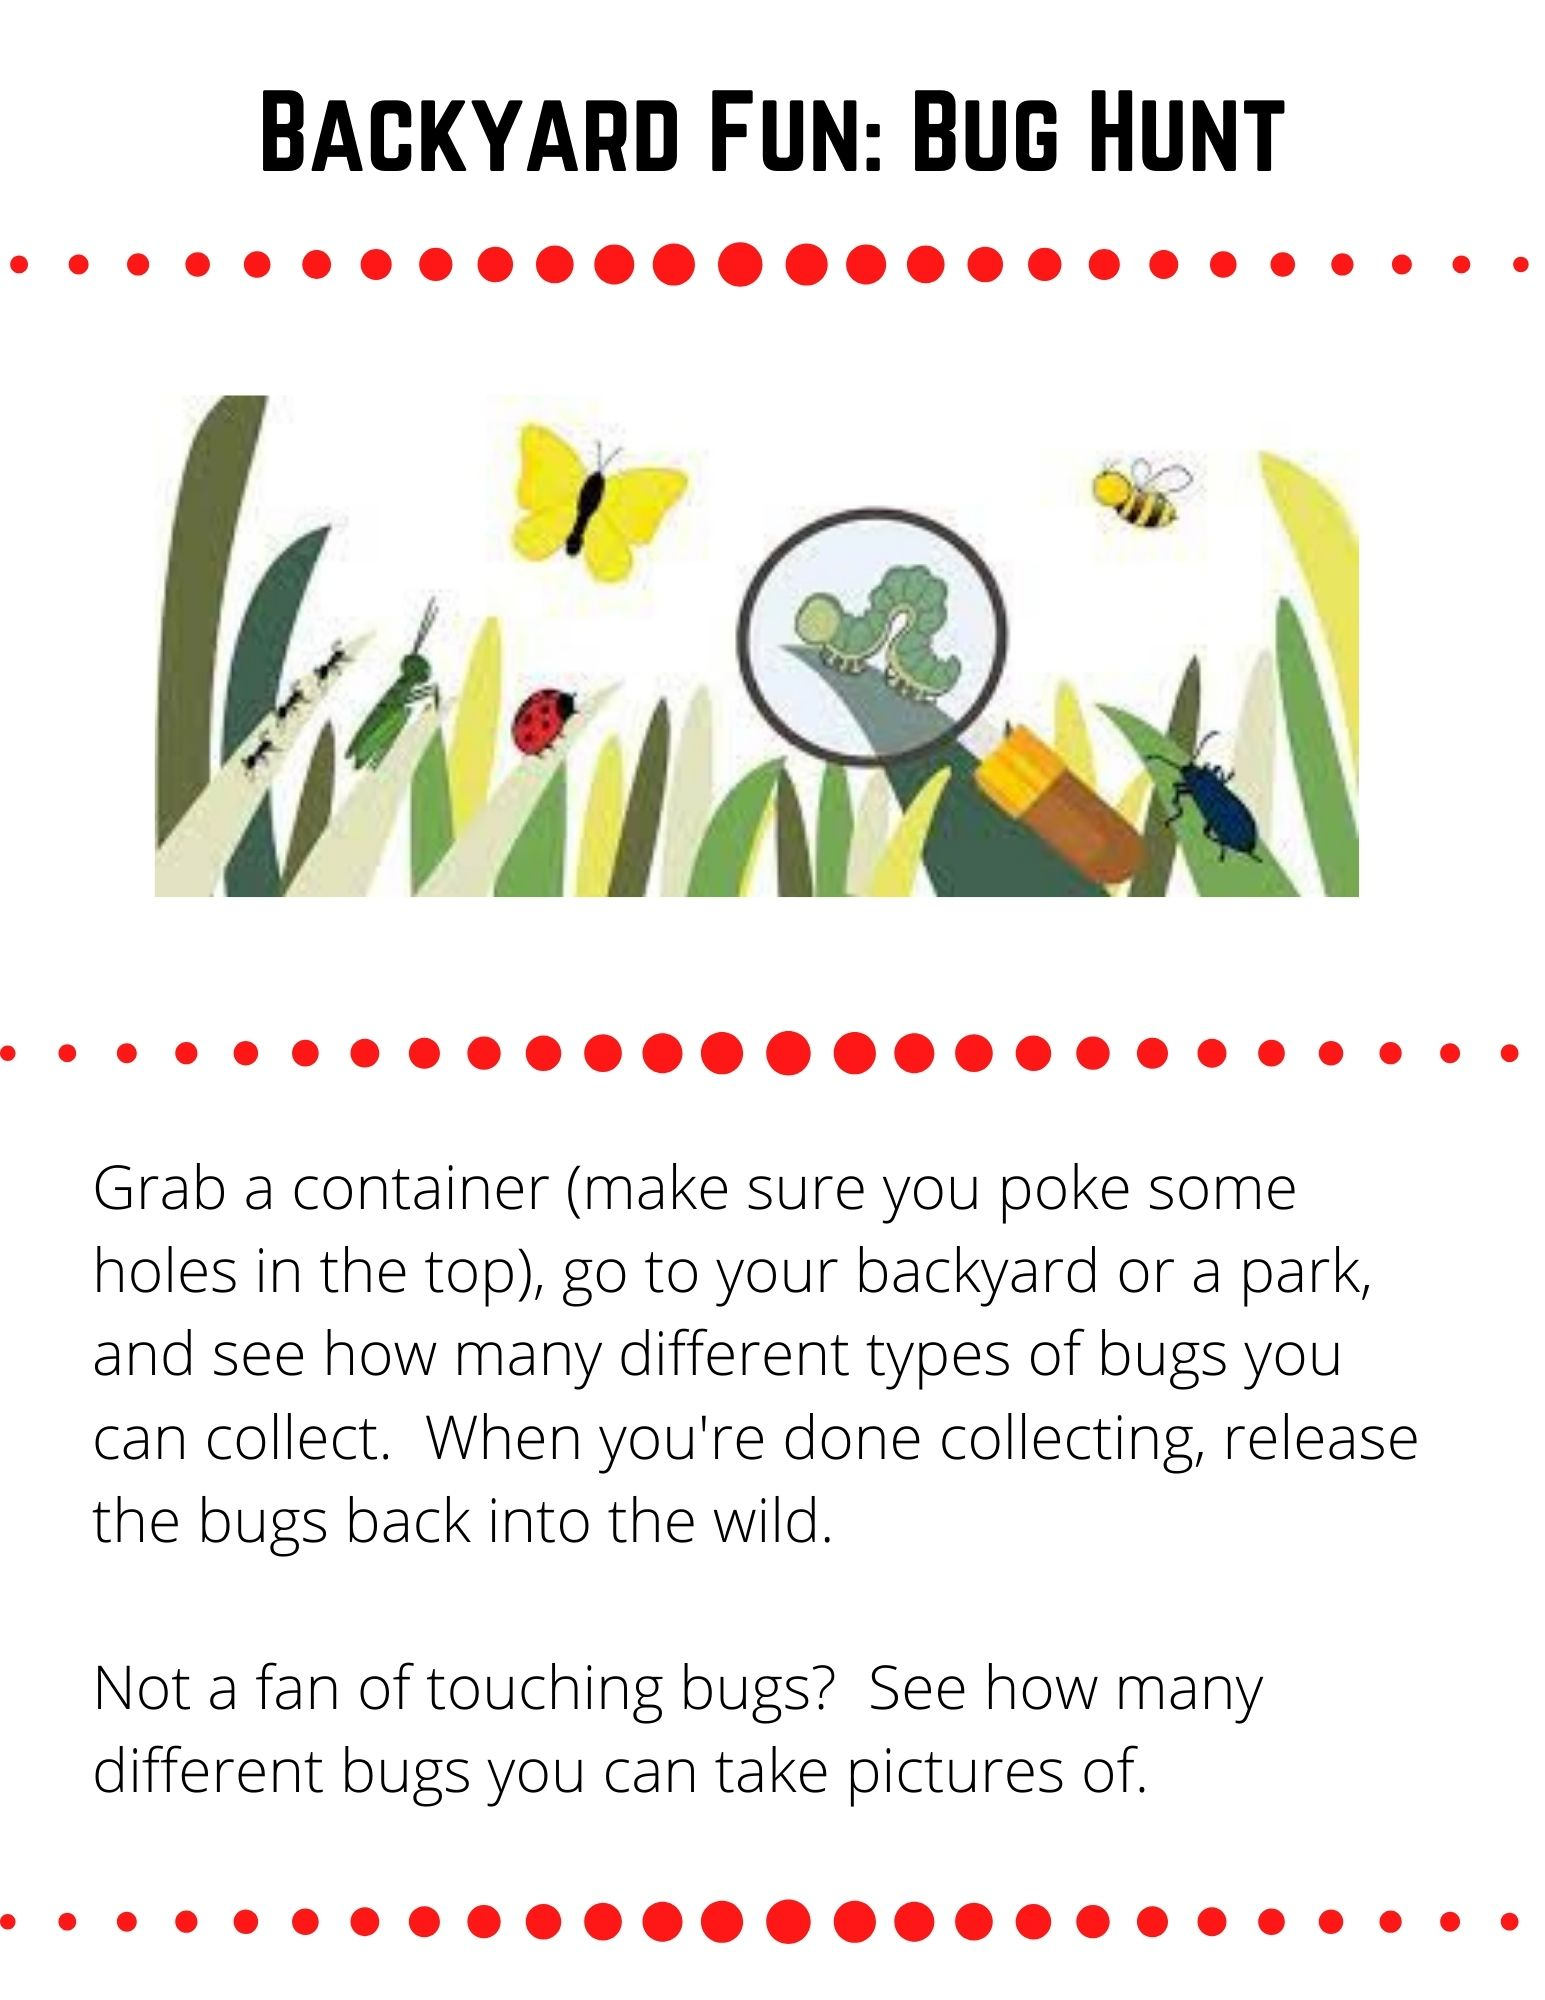 Backyard Fun: Bug Hunt. Grab a container (make sure you poke some holes in the top), go to your backyard or a park, and see how many different types of bugs you can collect.  When you're done collecting, release the bugs back into the wild.  Not a fan of touching bugs?  See how many different bugs you can take pictures of.